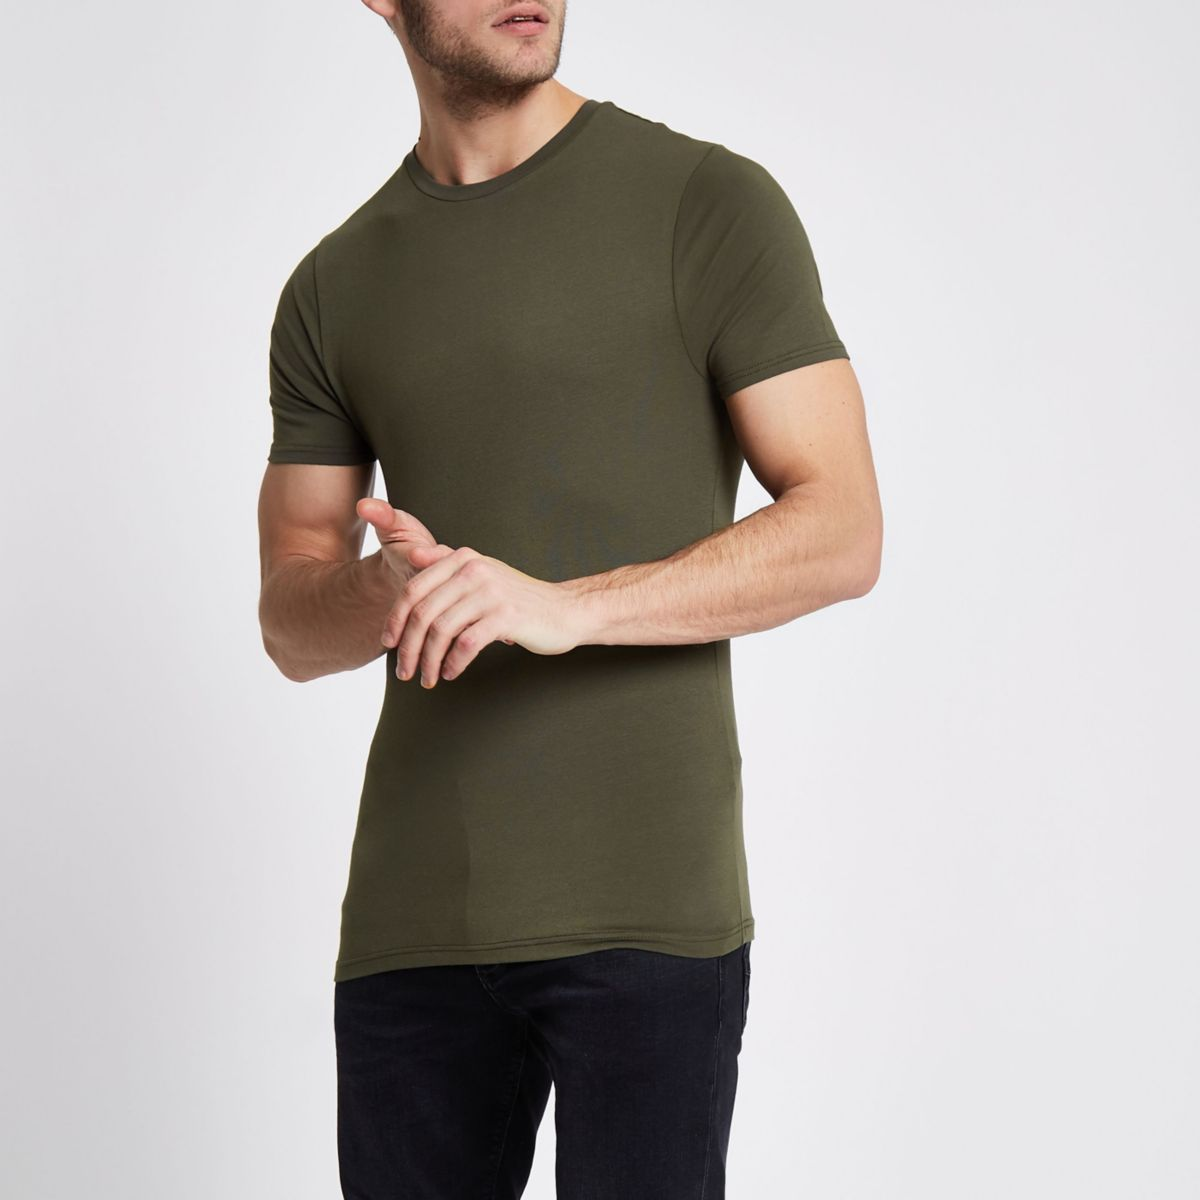 Khaki muscle fit crew neck T-shirt